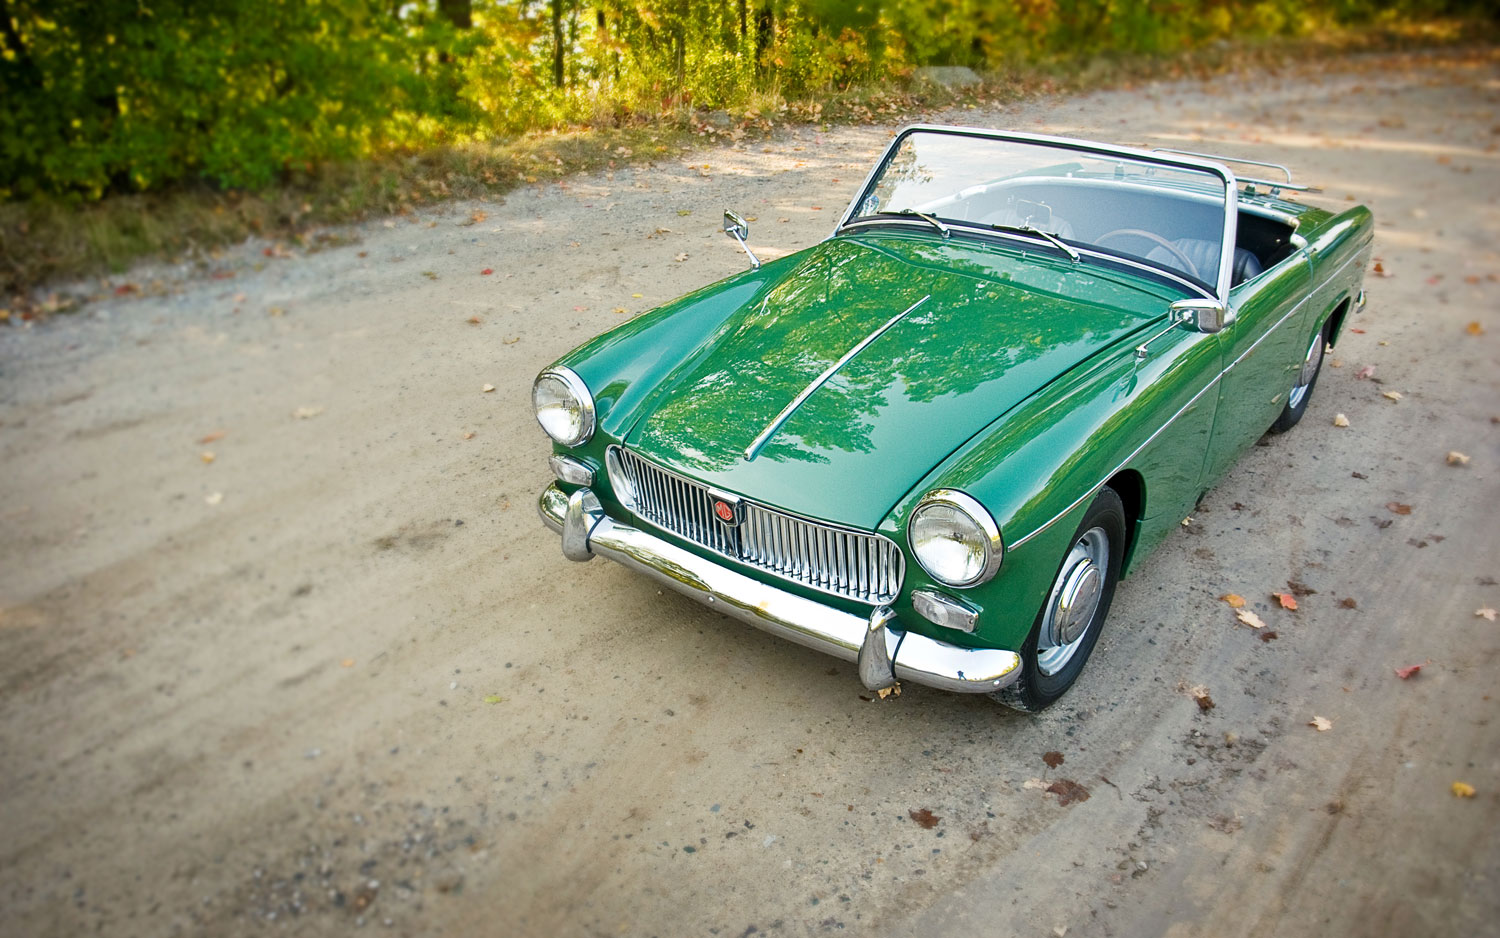 1962 1966 Mg Midget Front Left View3